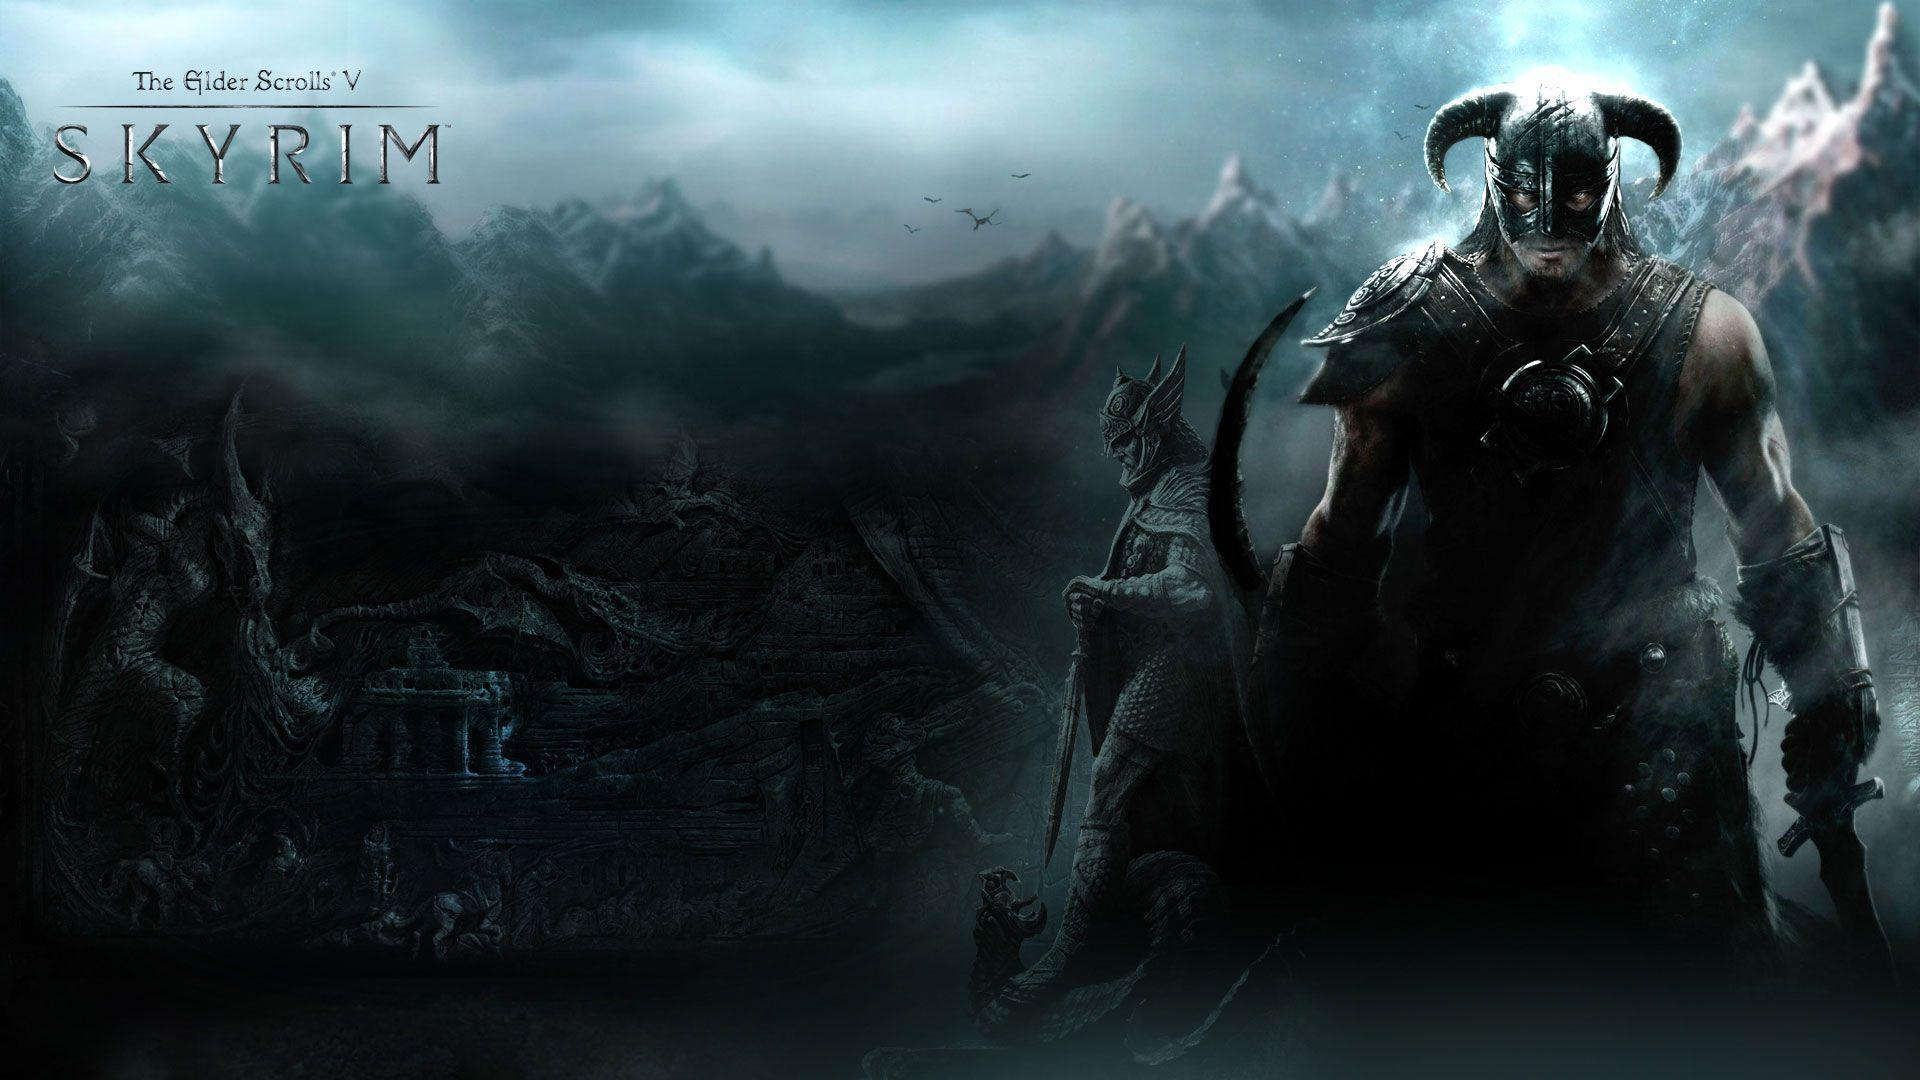 dragonborn wallpapers, skyrim wallpaper 1920x1080 hd